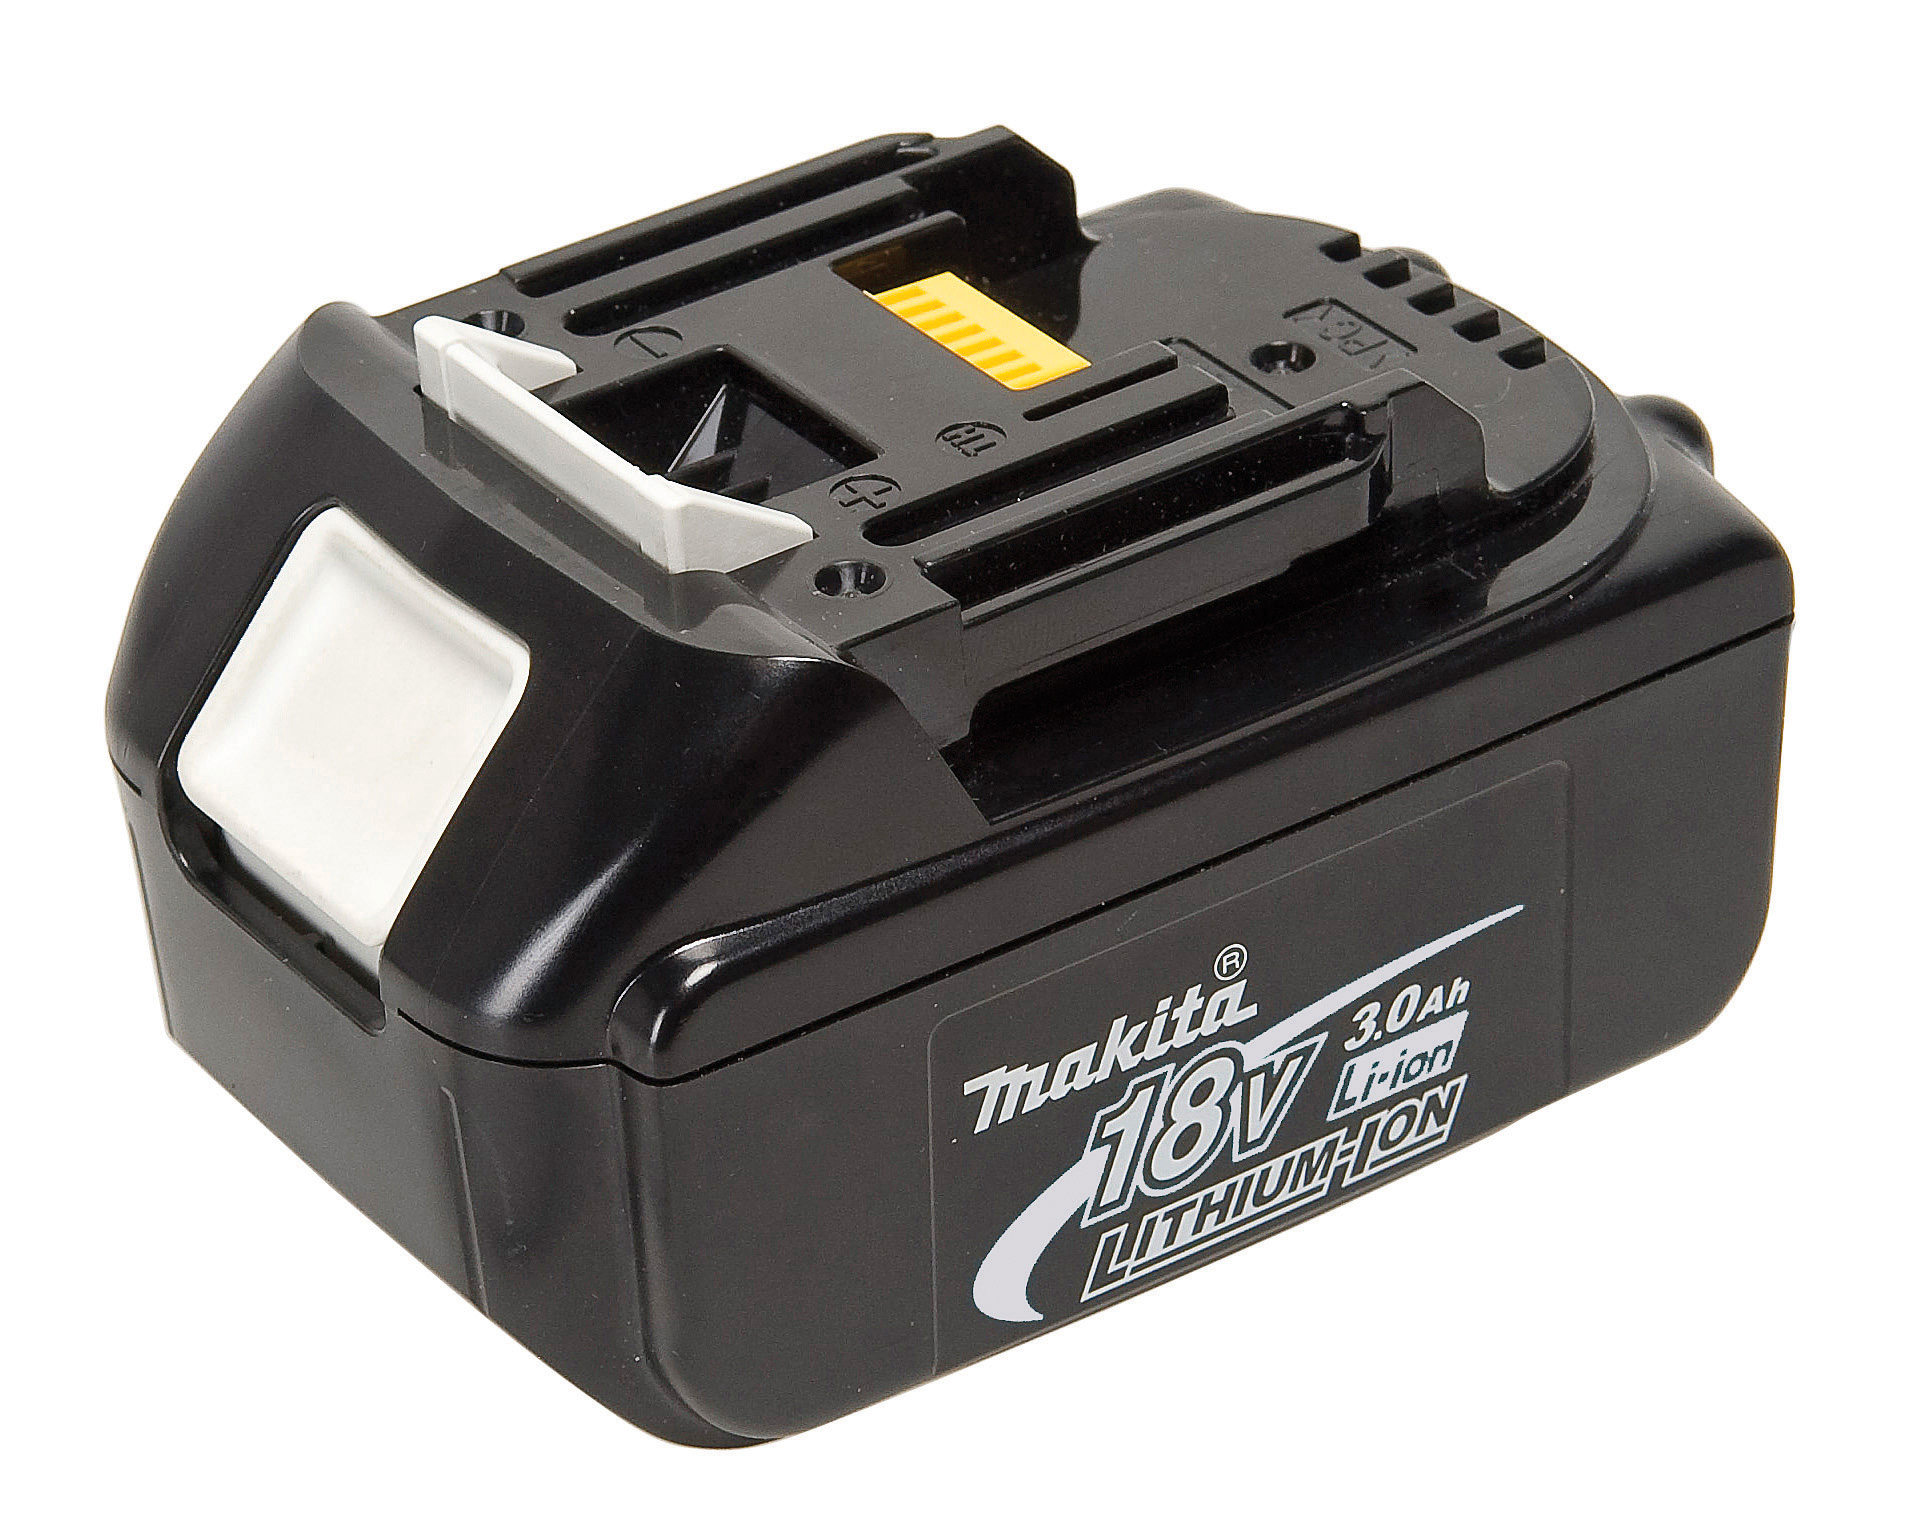 Greenlee Gator 18V Battery & Chargers - 18V Battery